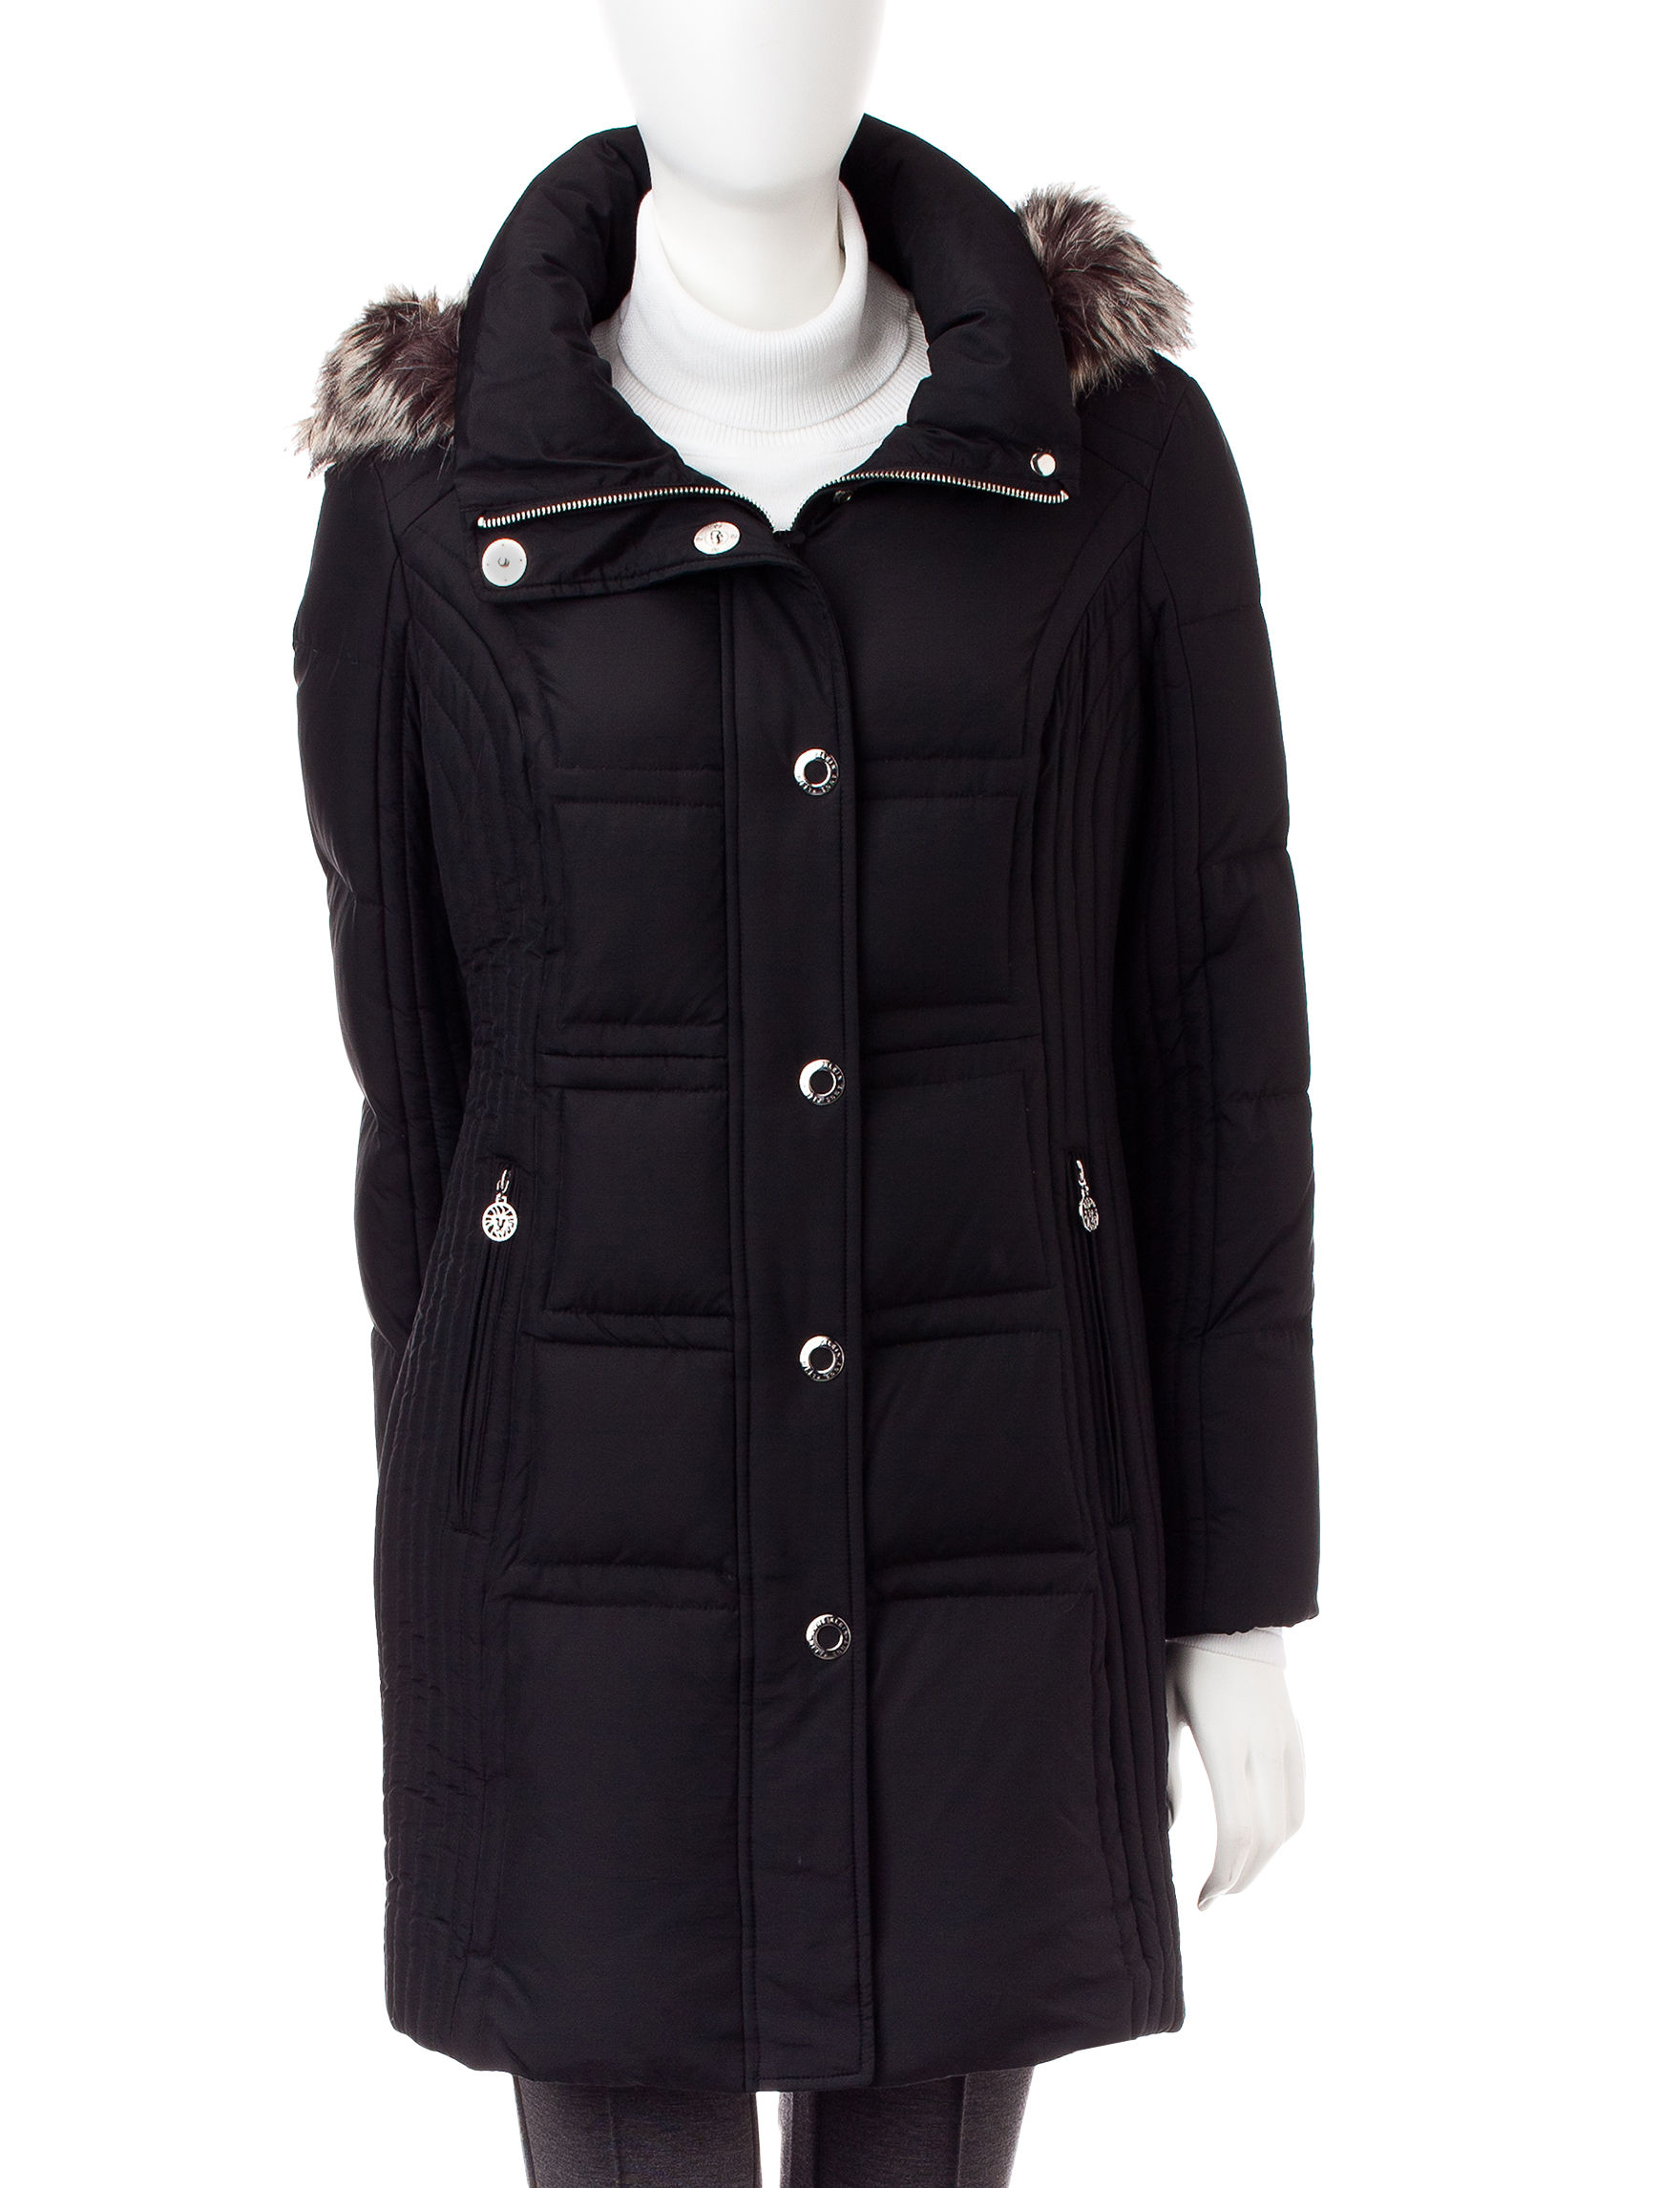 Anne Klein Black Rain & Snow Jackets